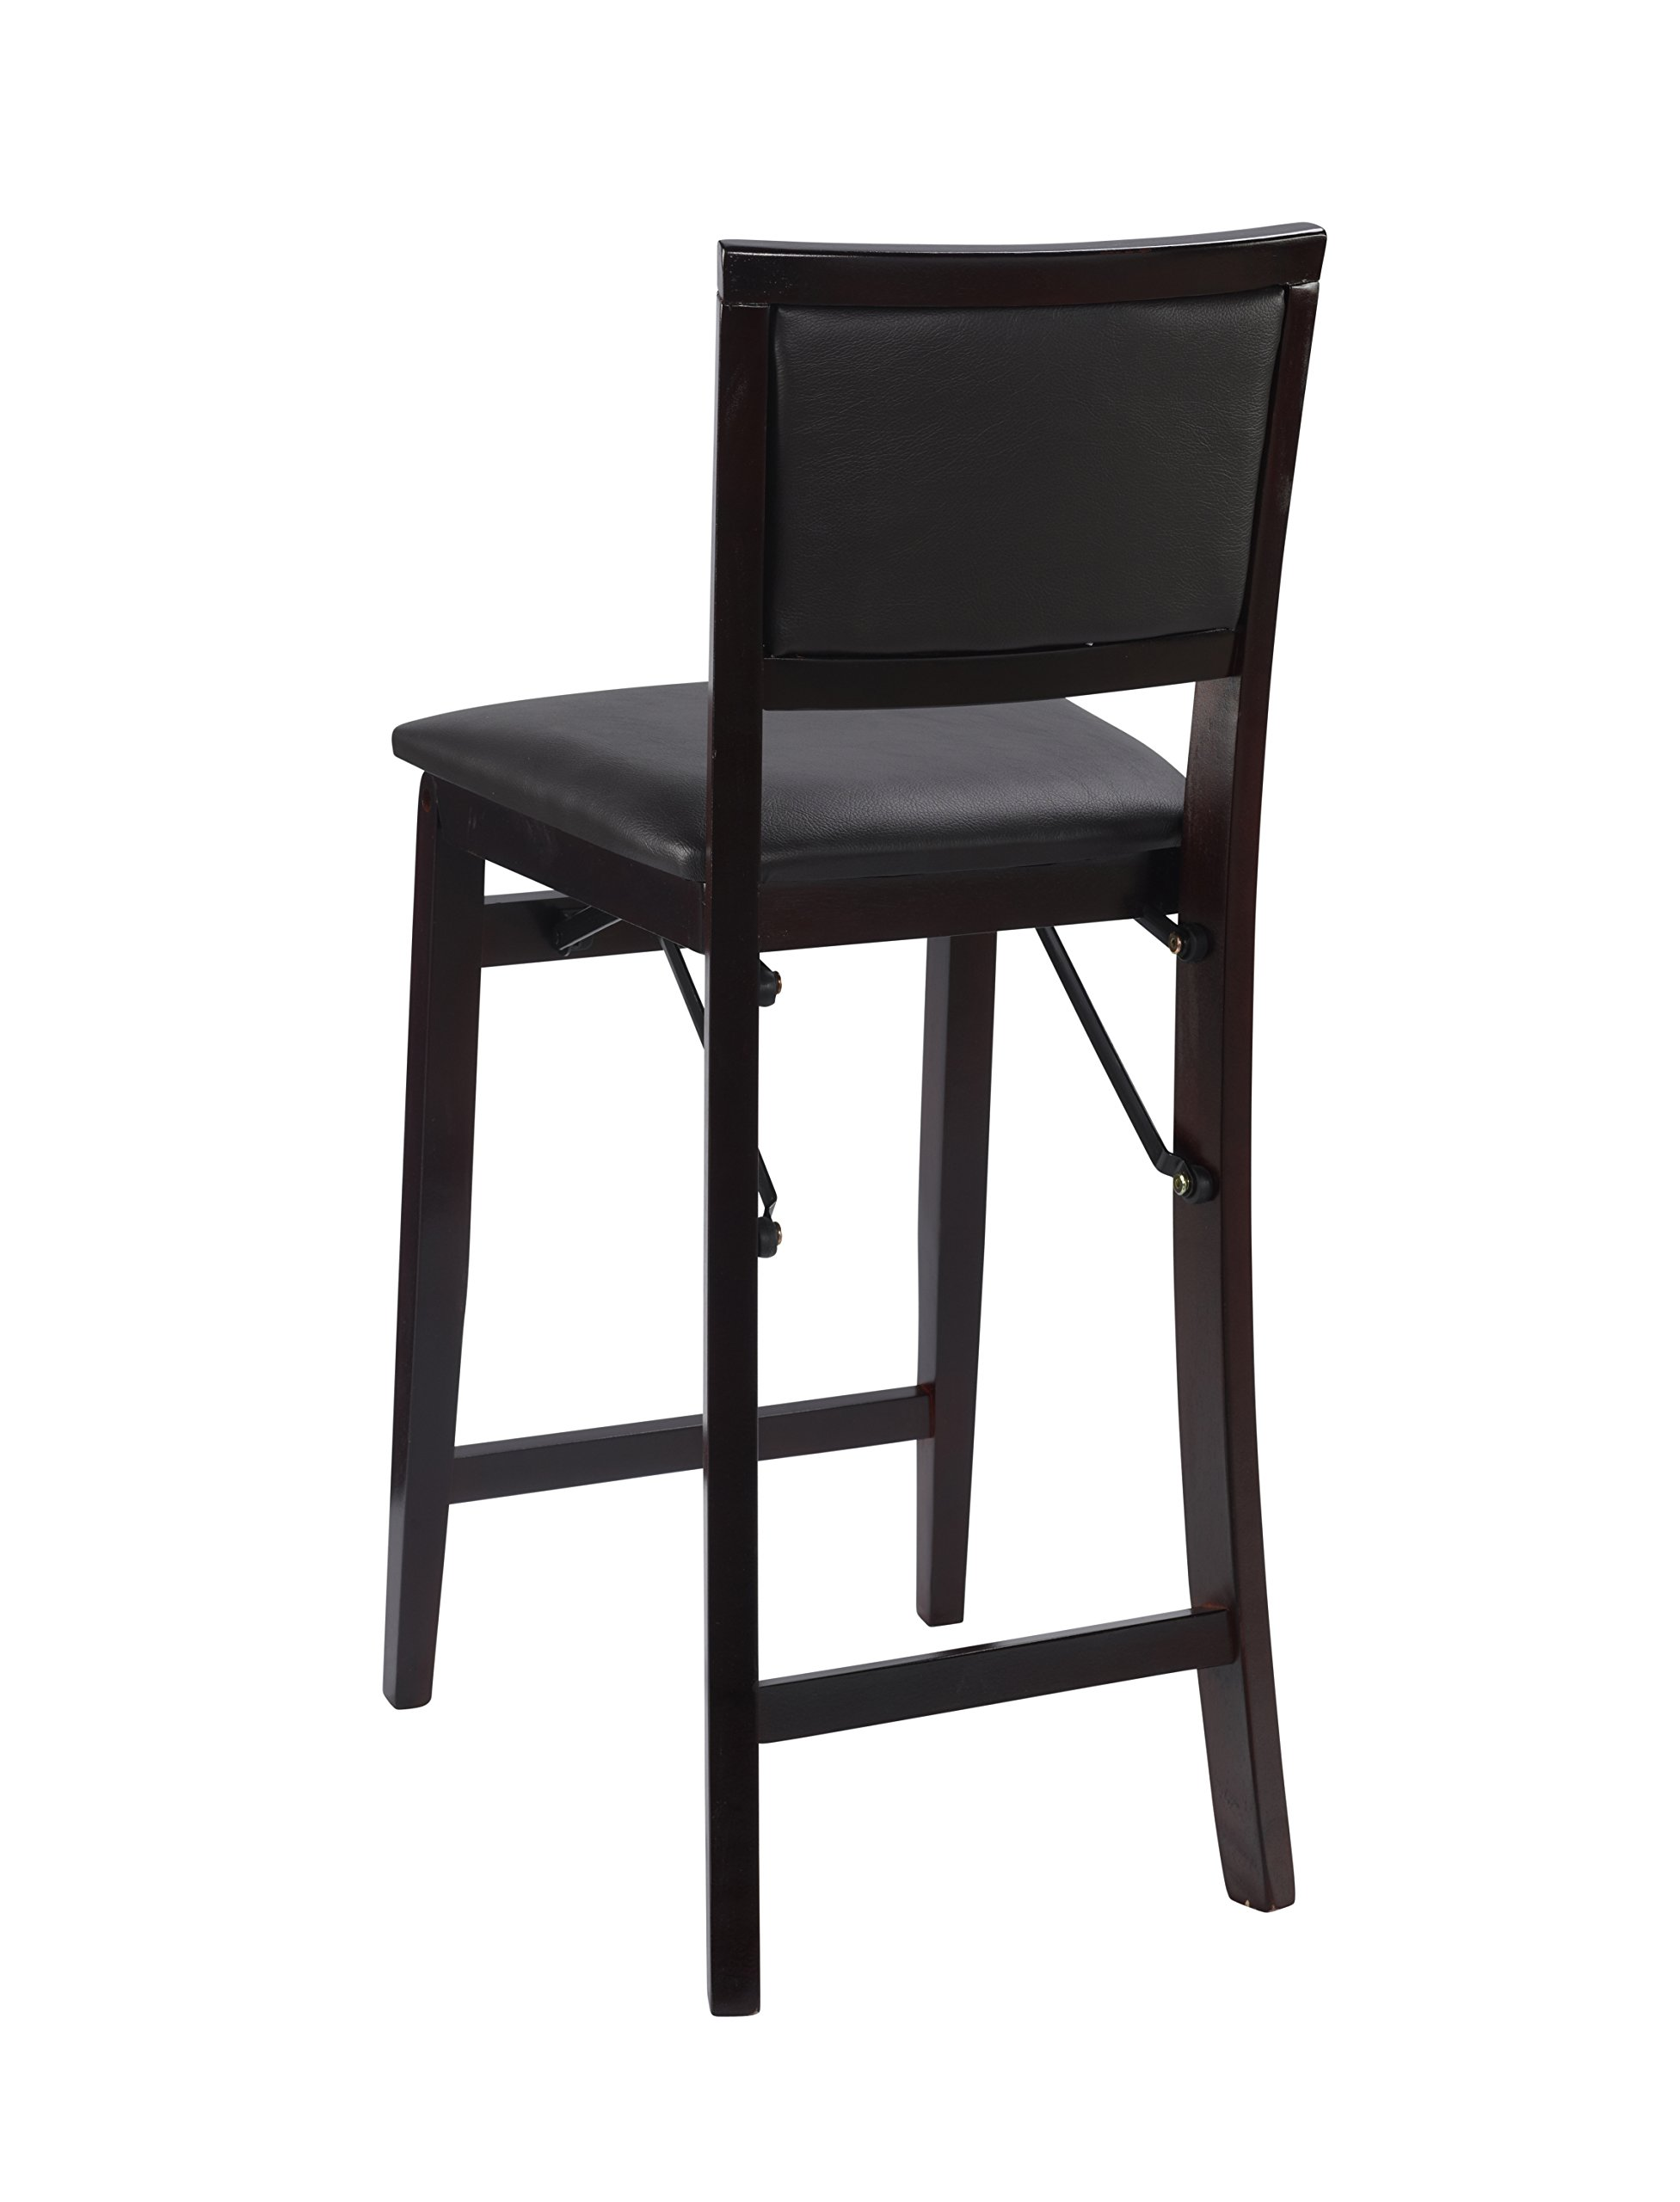 Linon Home Decor Keira Pad Back Folding Counter Stool 24